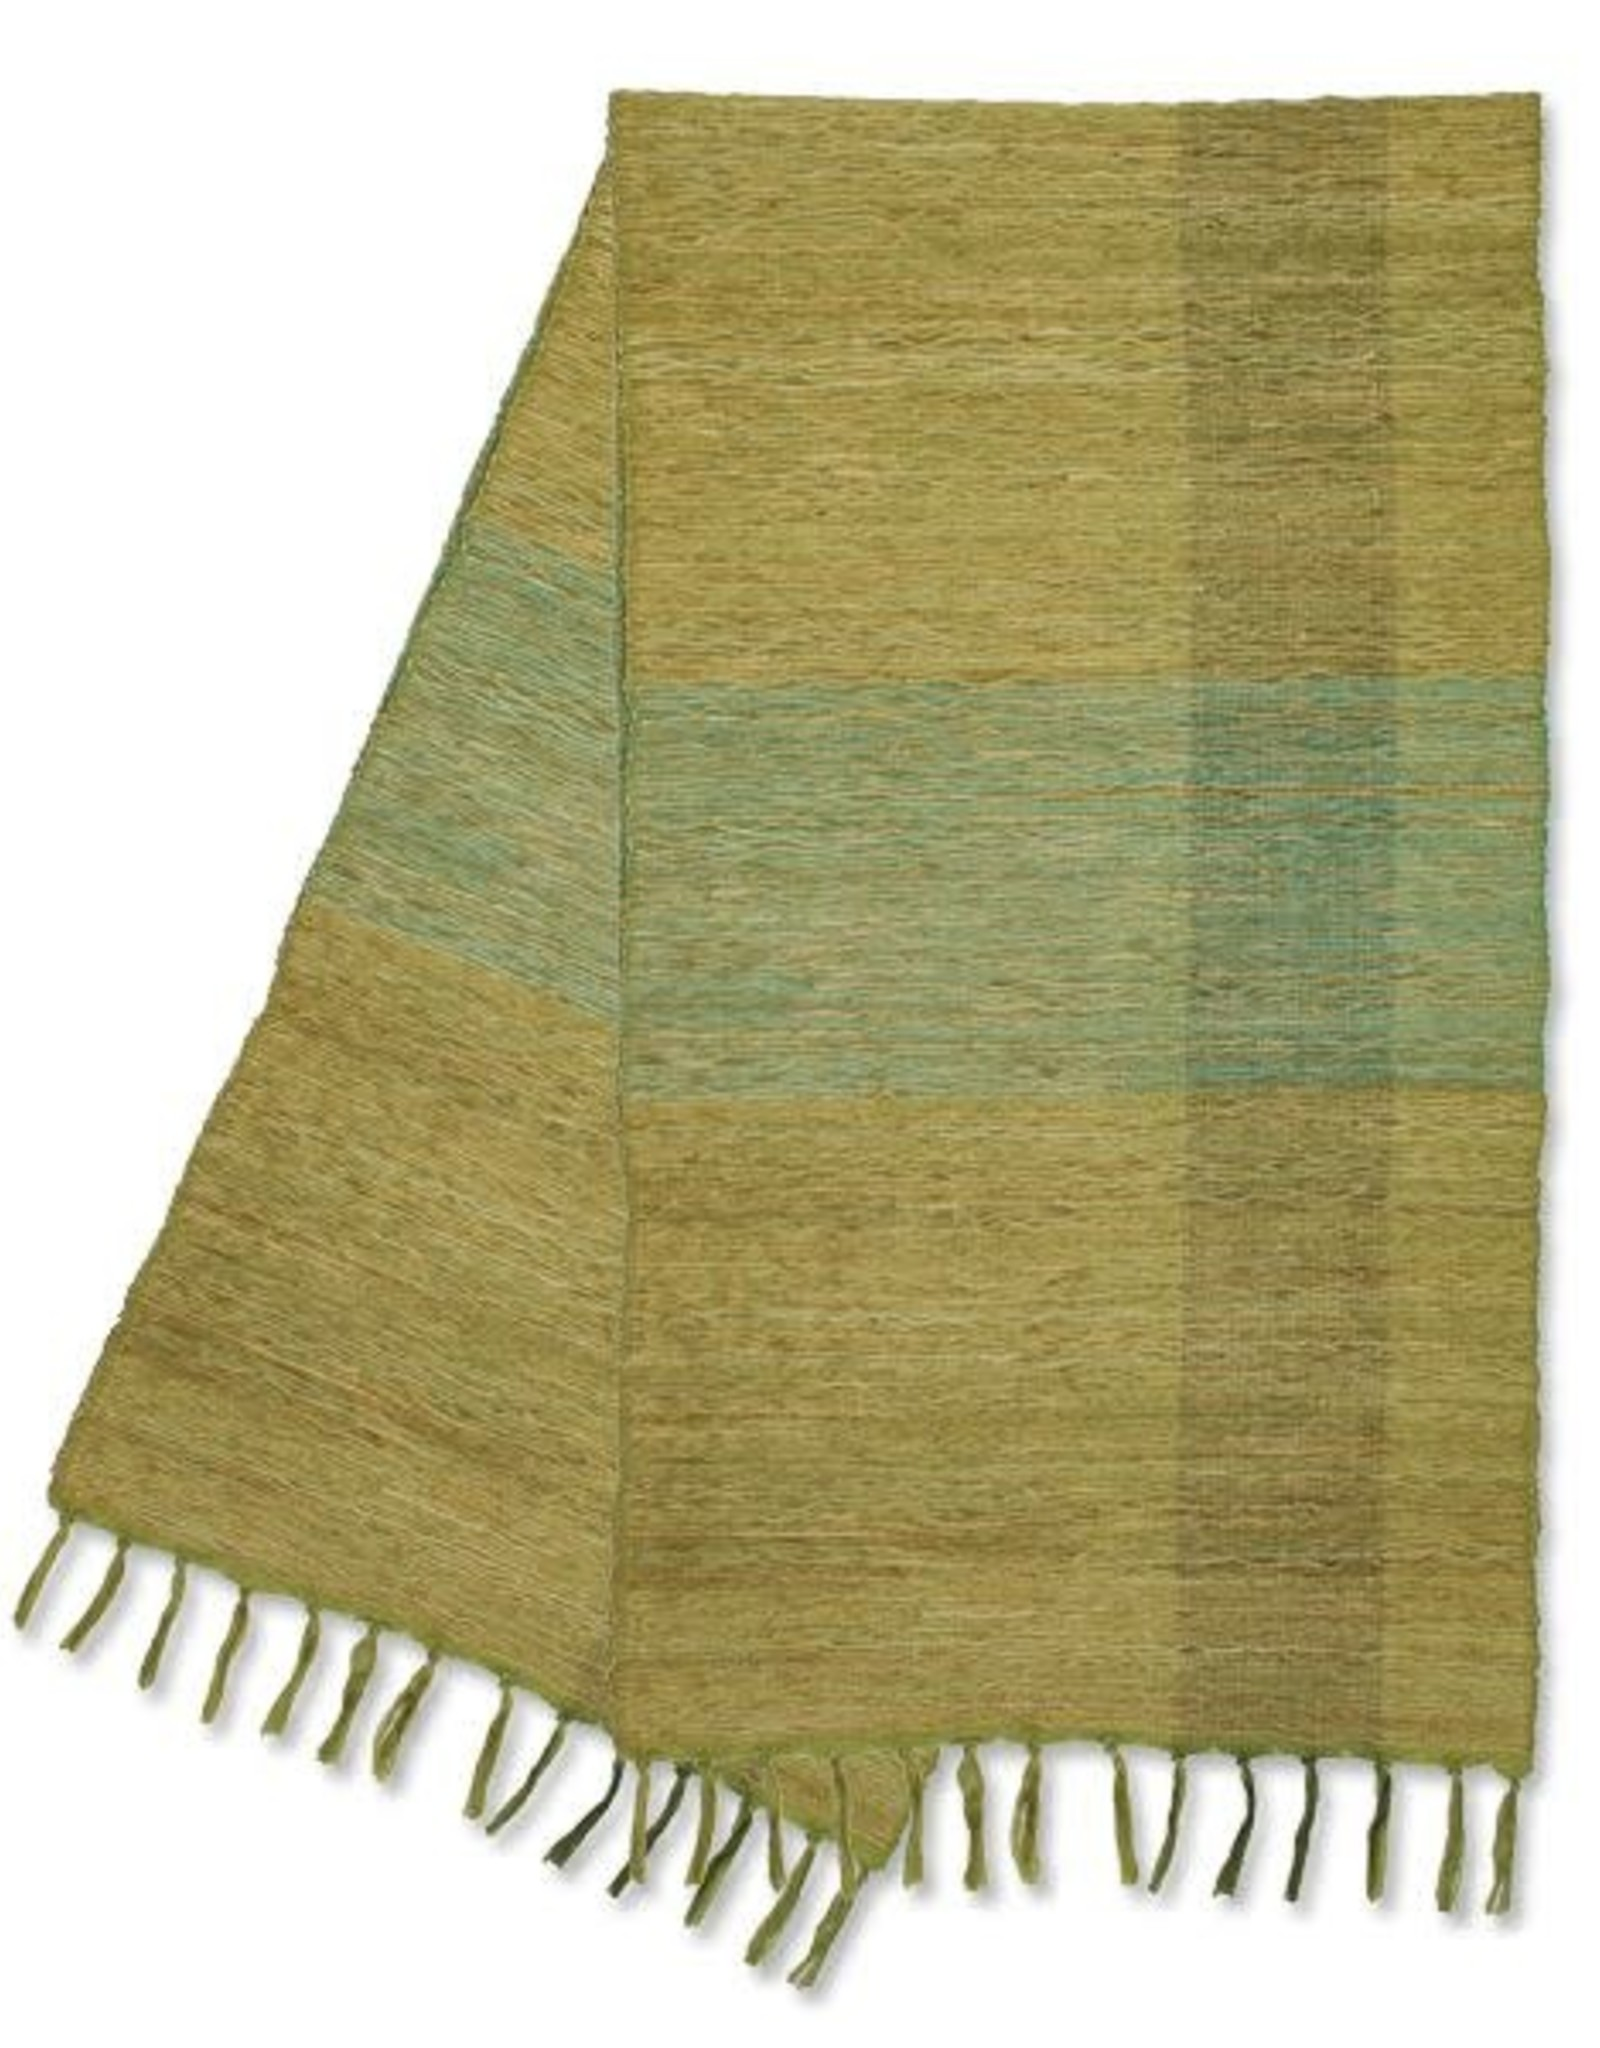 Vetiver Table Runner - Green Blocks